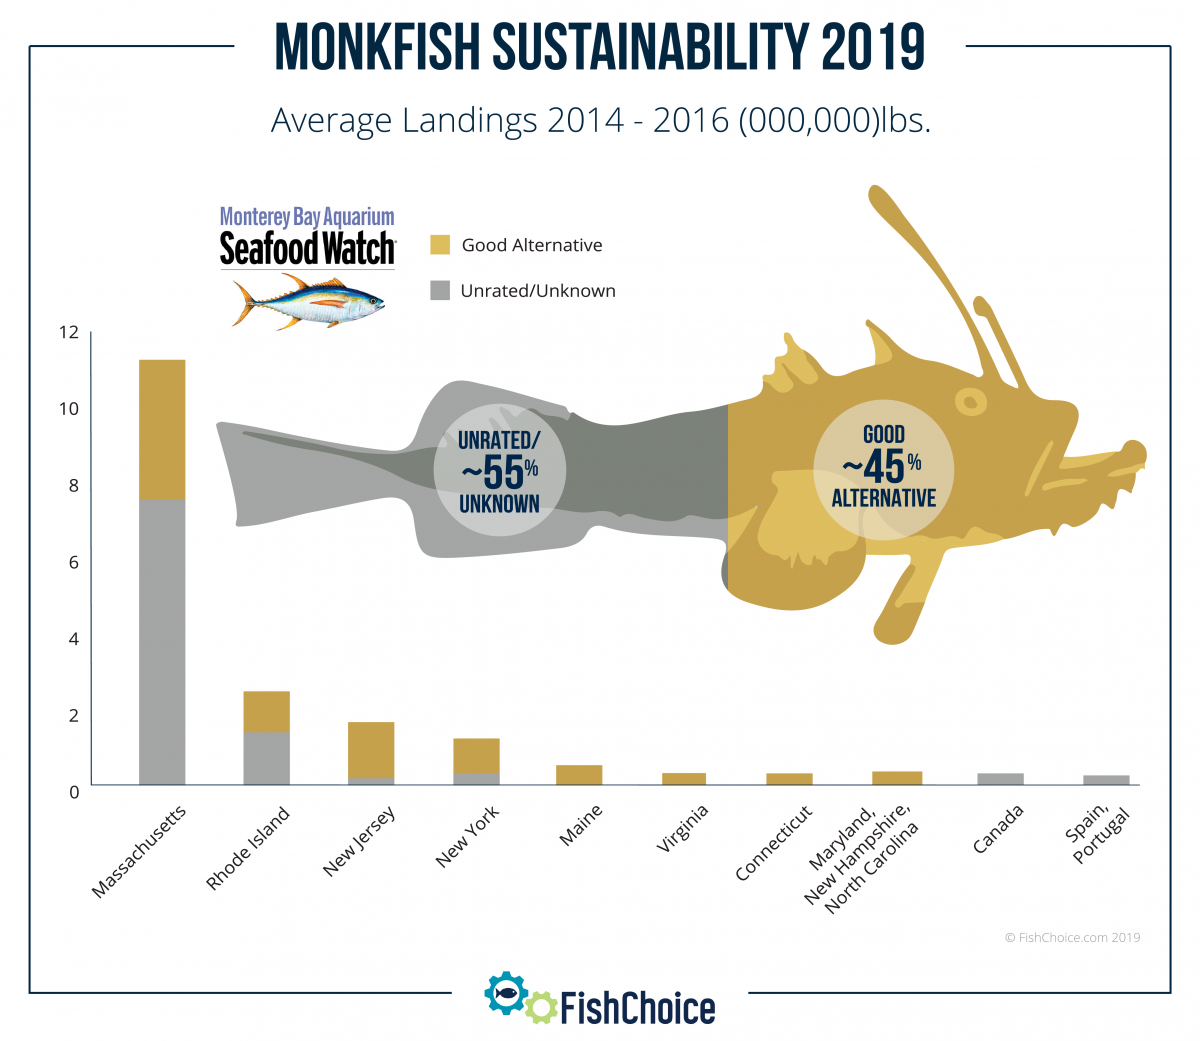 Monkfish Sustainability